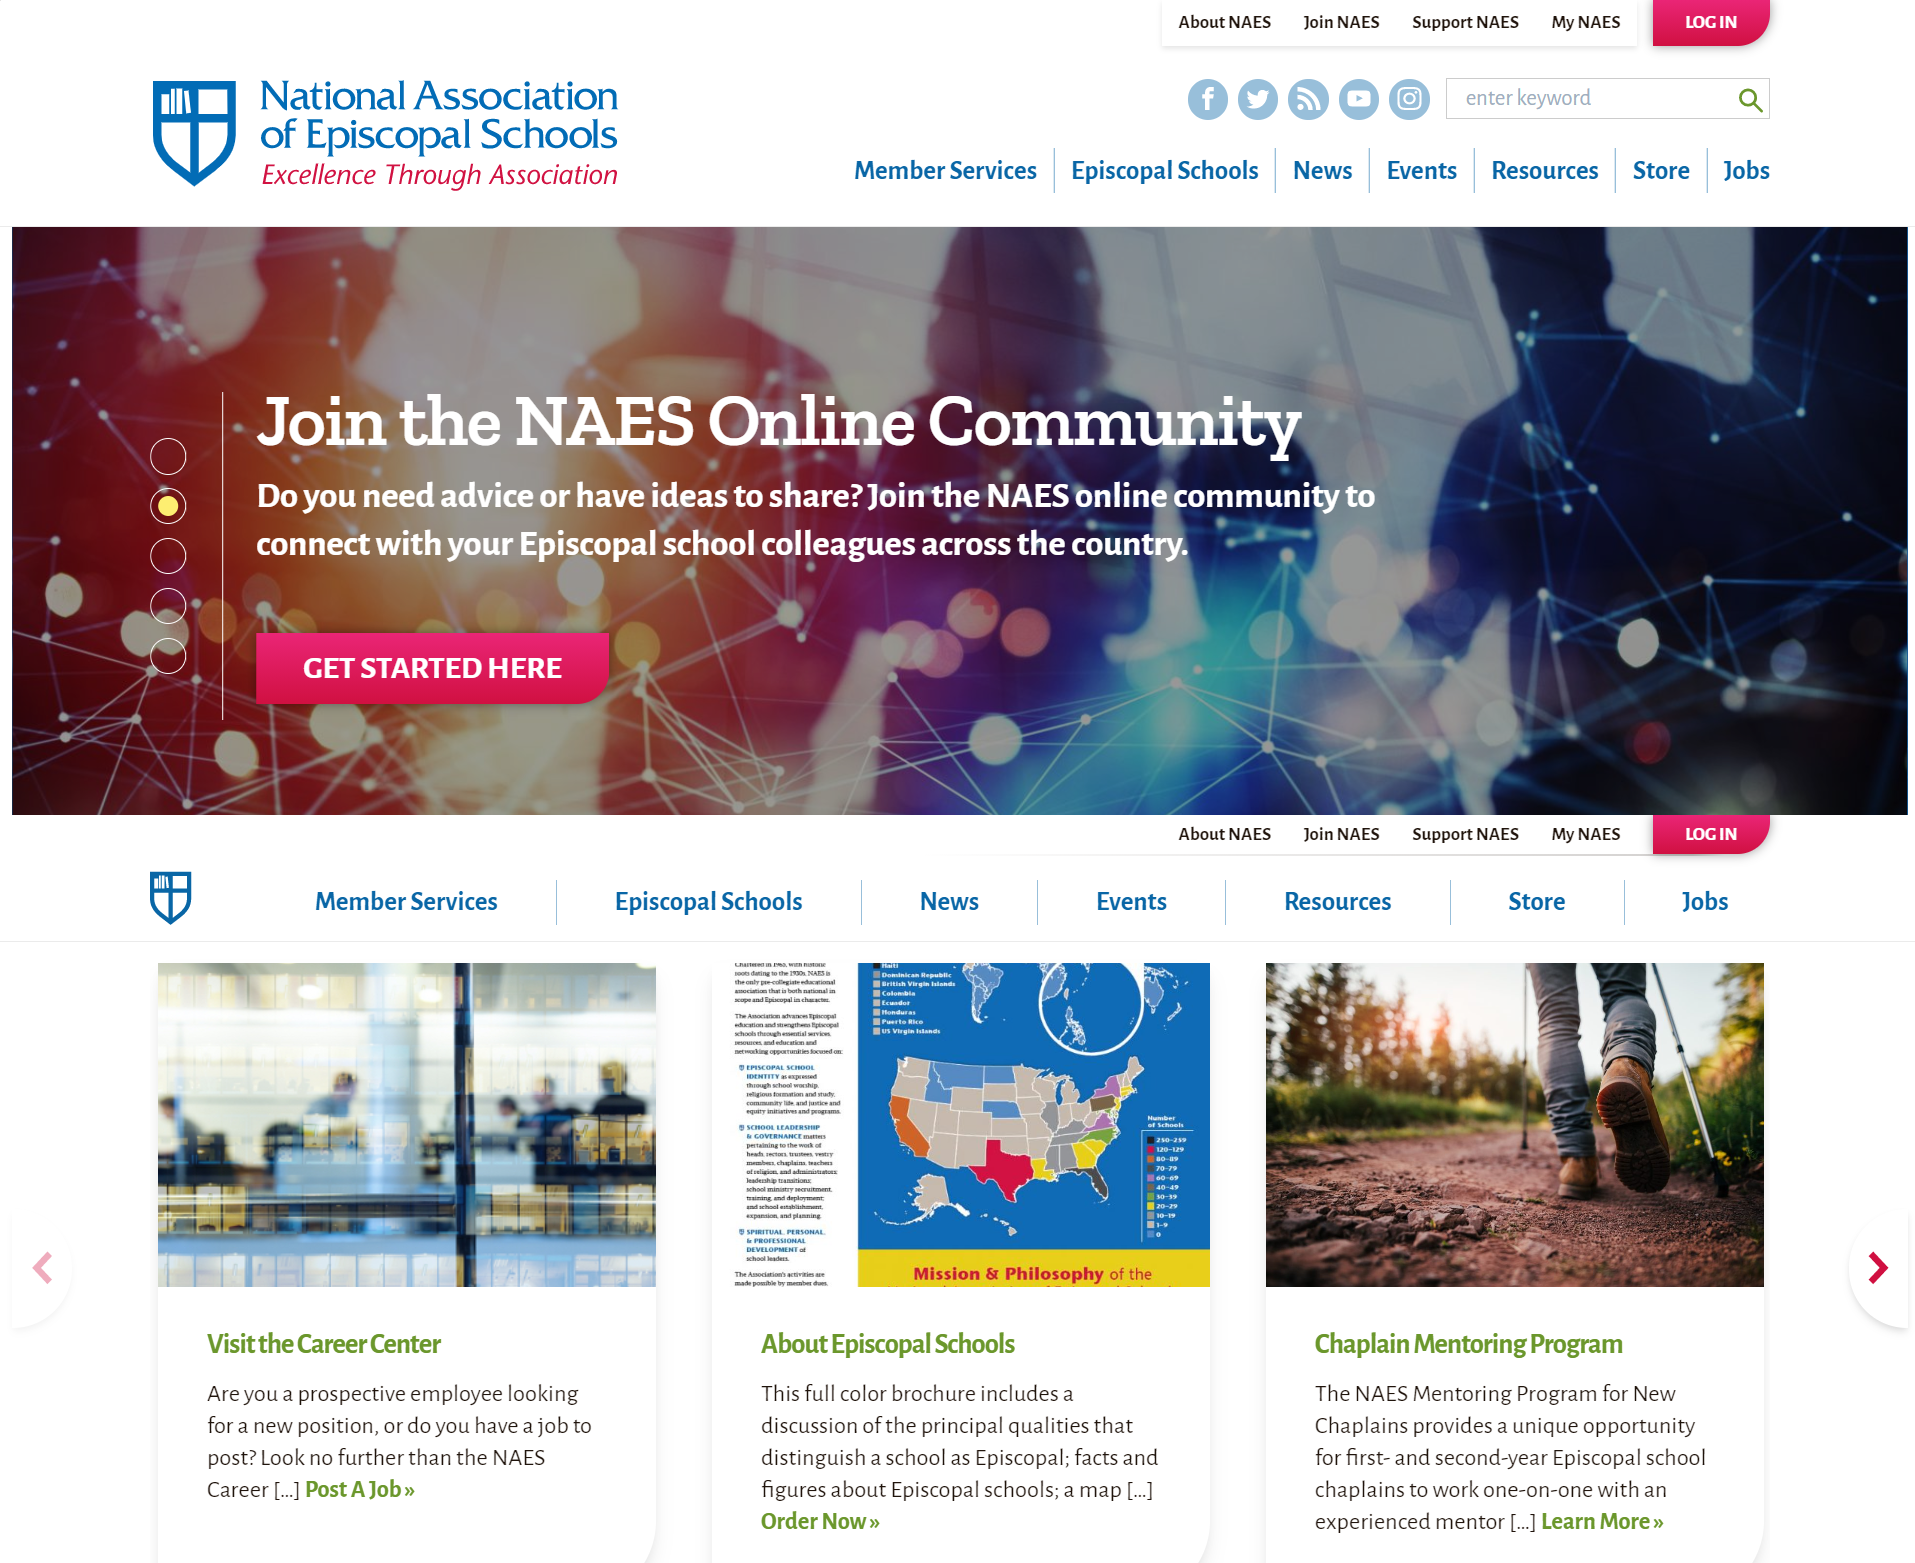 National-Association-of-Episcopal-Schools-Home